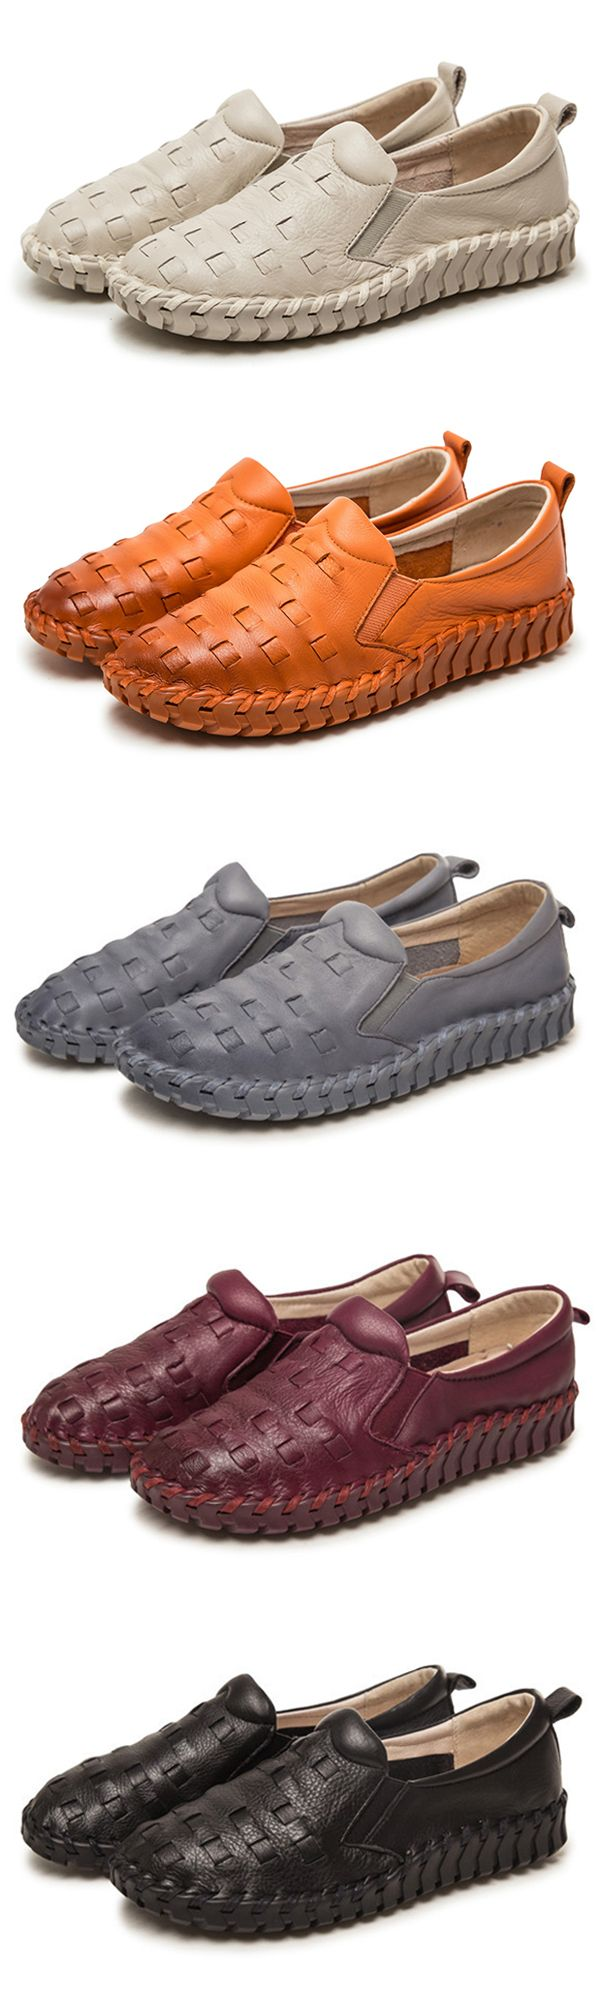 US$45.45  SOCOFY Casual Handmade Leather Stitching Slip On Flat Loafers